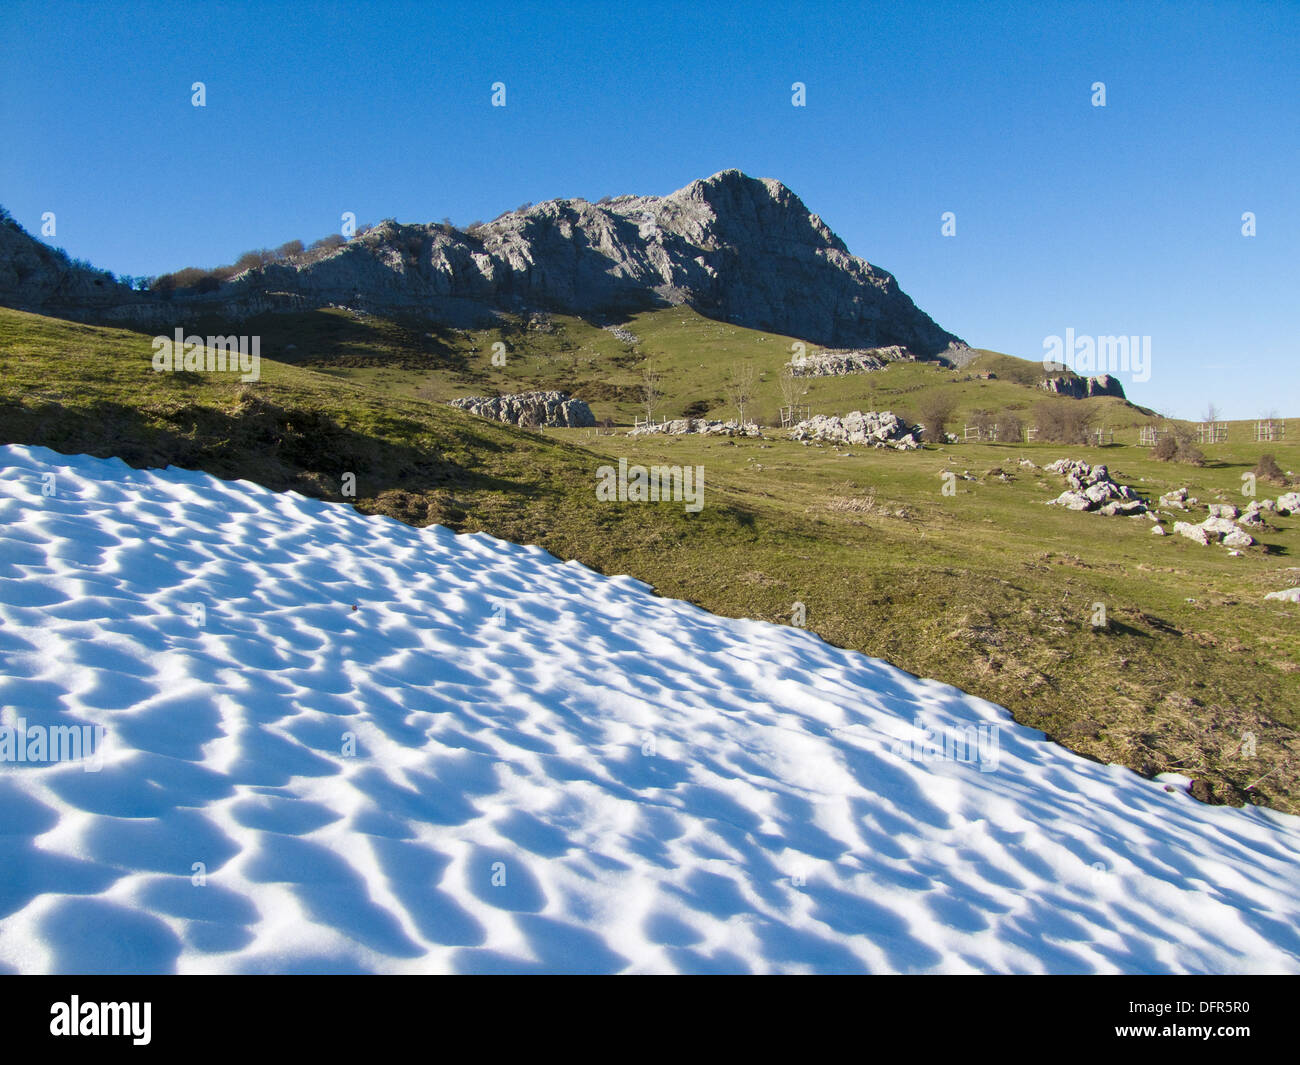 Mount Lekanda (1302 meters) in Gorbea Natural Park, Biscay, Basque Country, Spain. - Stock Image